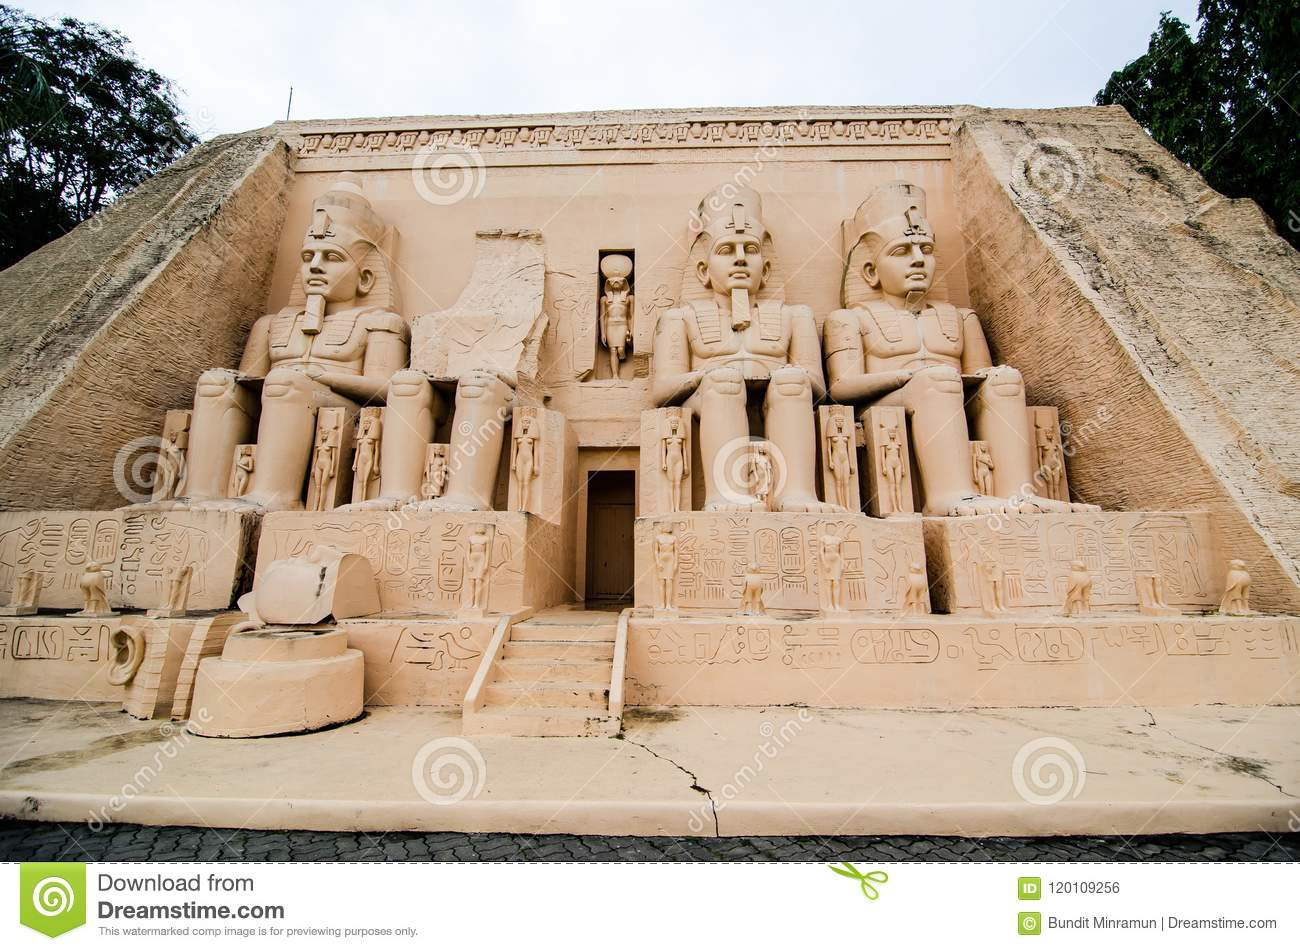 The Abu Simbel temples at miniature park is an open space that displays miniature buildings and models.